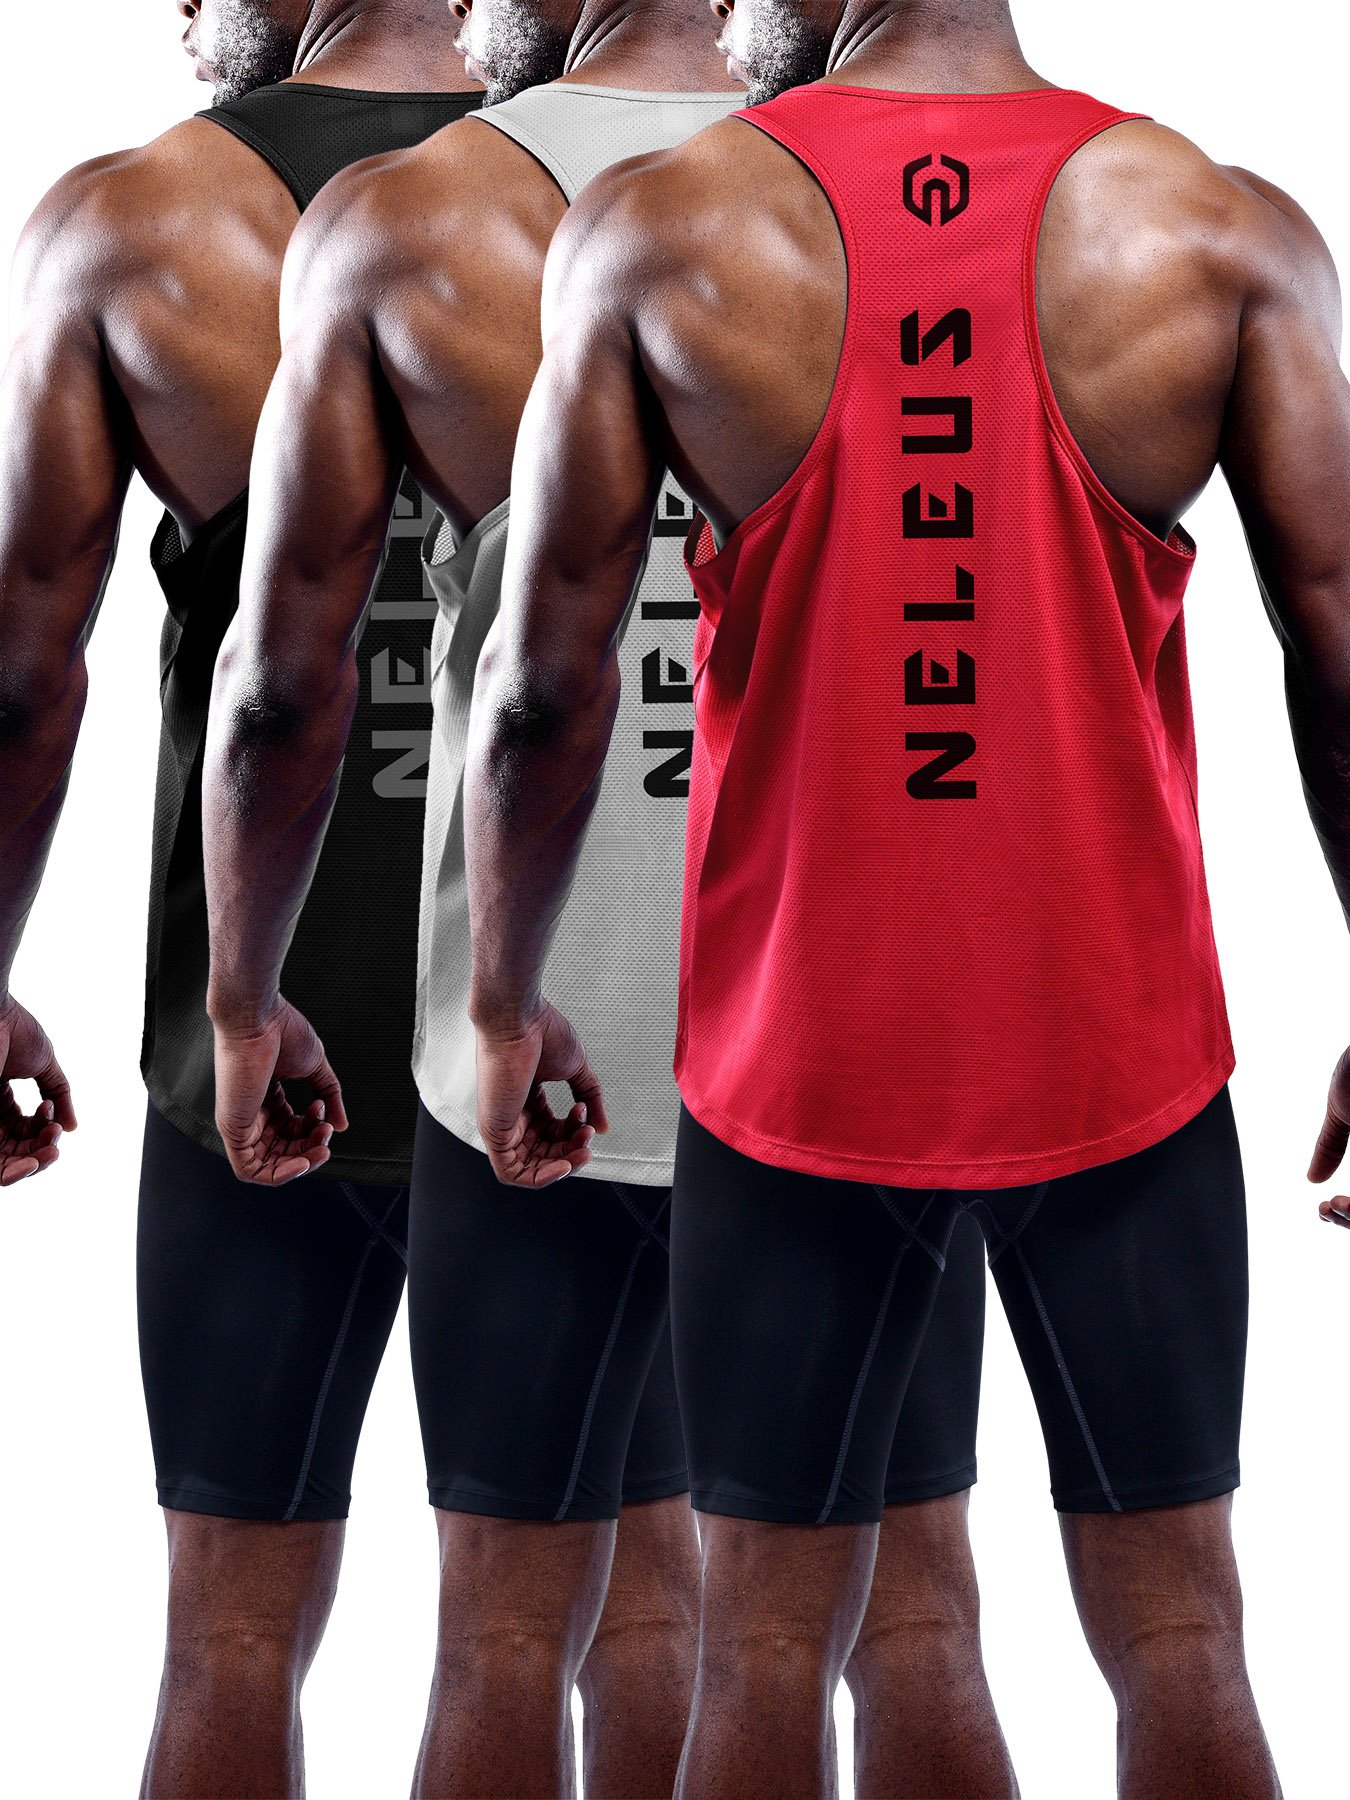 Neleus Men's 3 Pack Dry Fit Athletic Sleeveless Muscle Tank,5031,Black,Grey,Red,XS,EU S